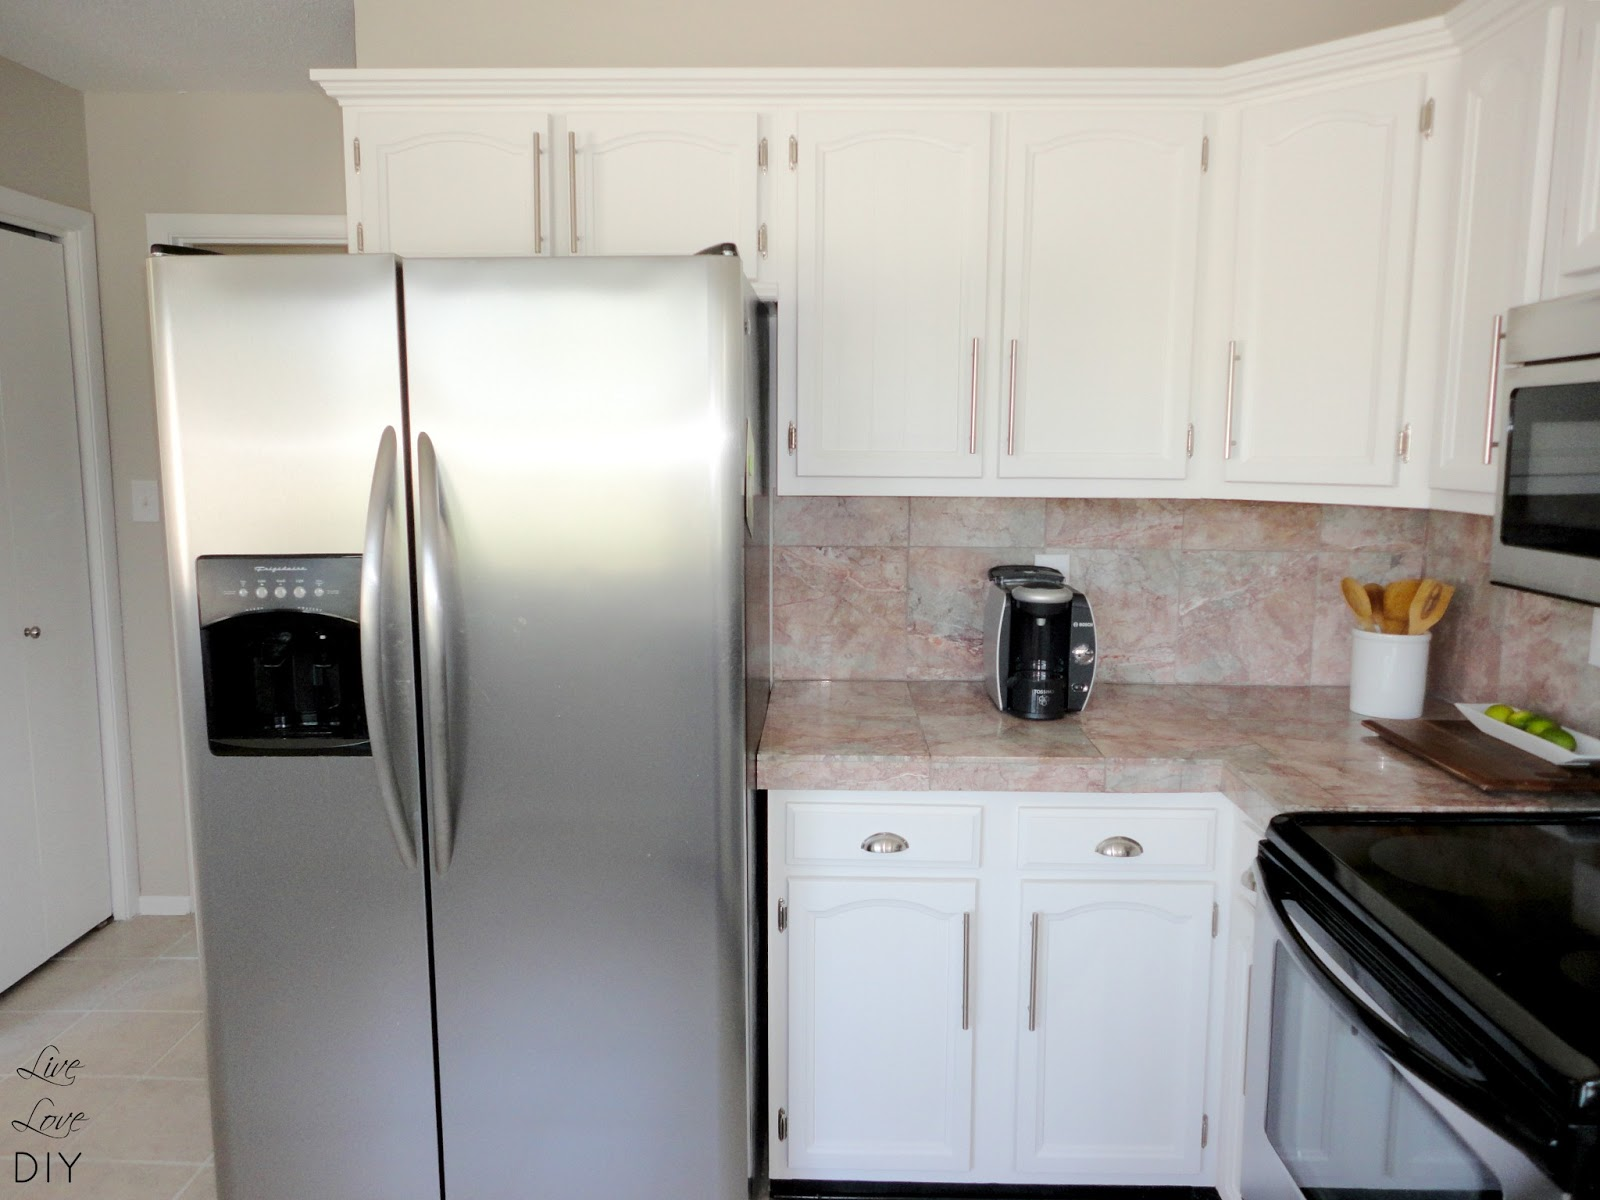 kitchen cabinets painted white before and afterLiveLoveDIY How To Paint Kitchen Cabinets in 10 Easy Steps